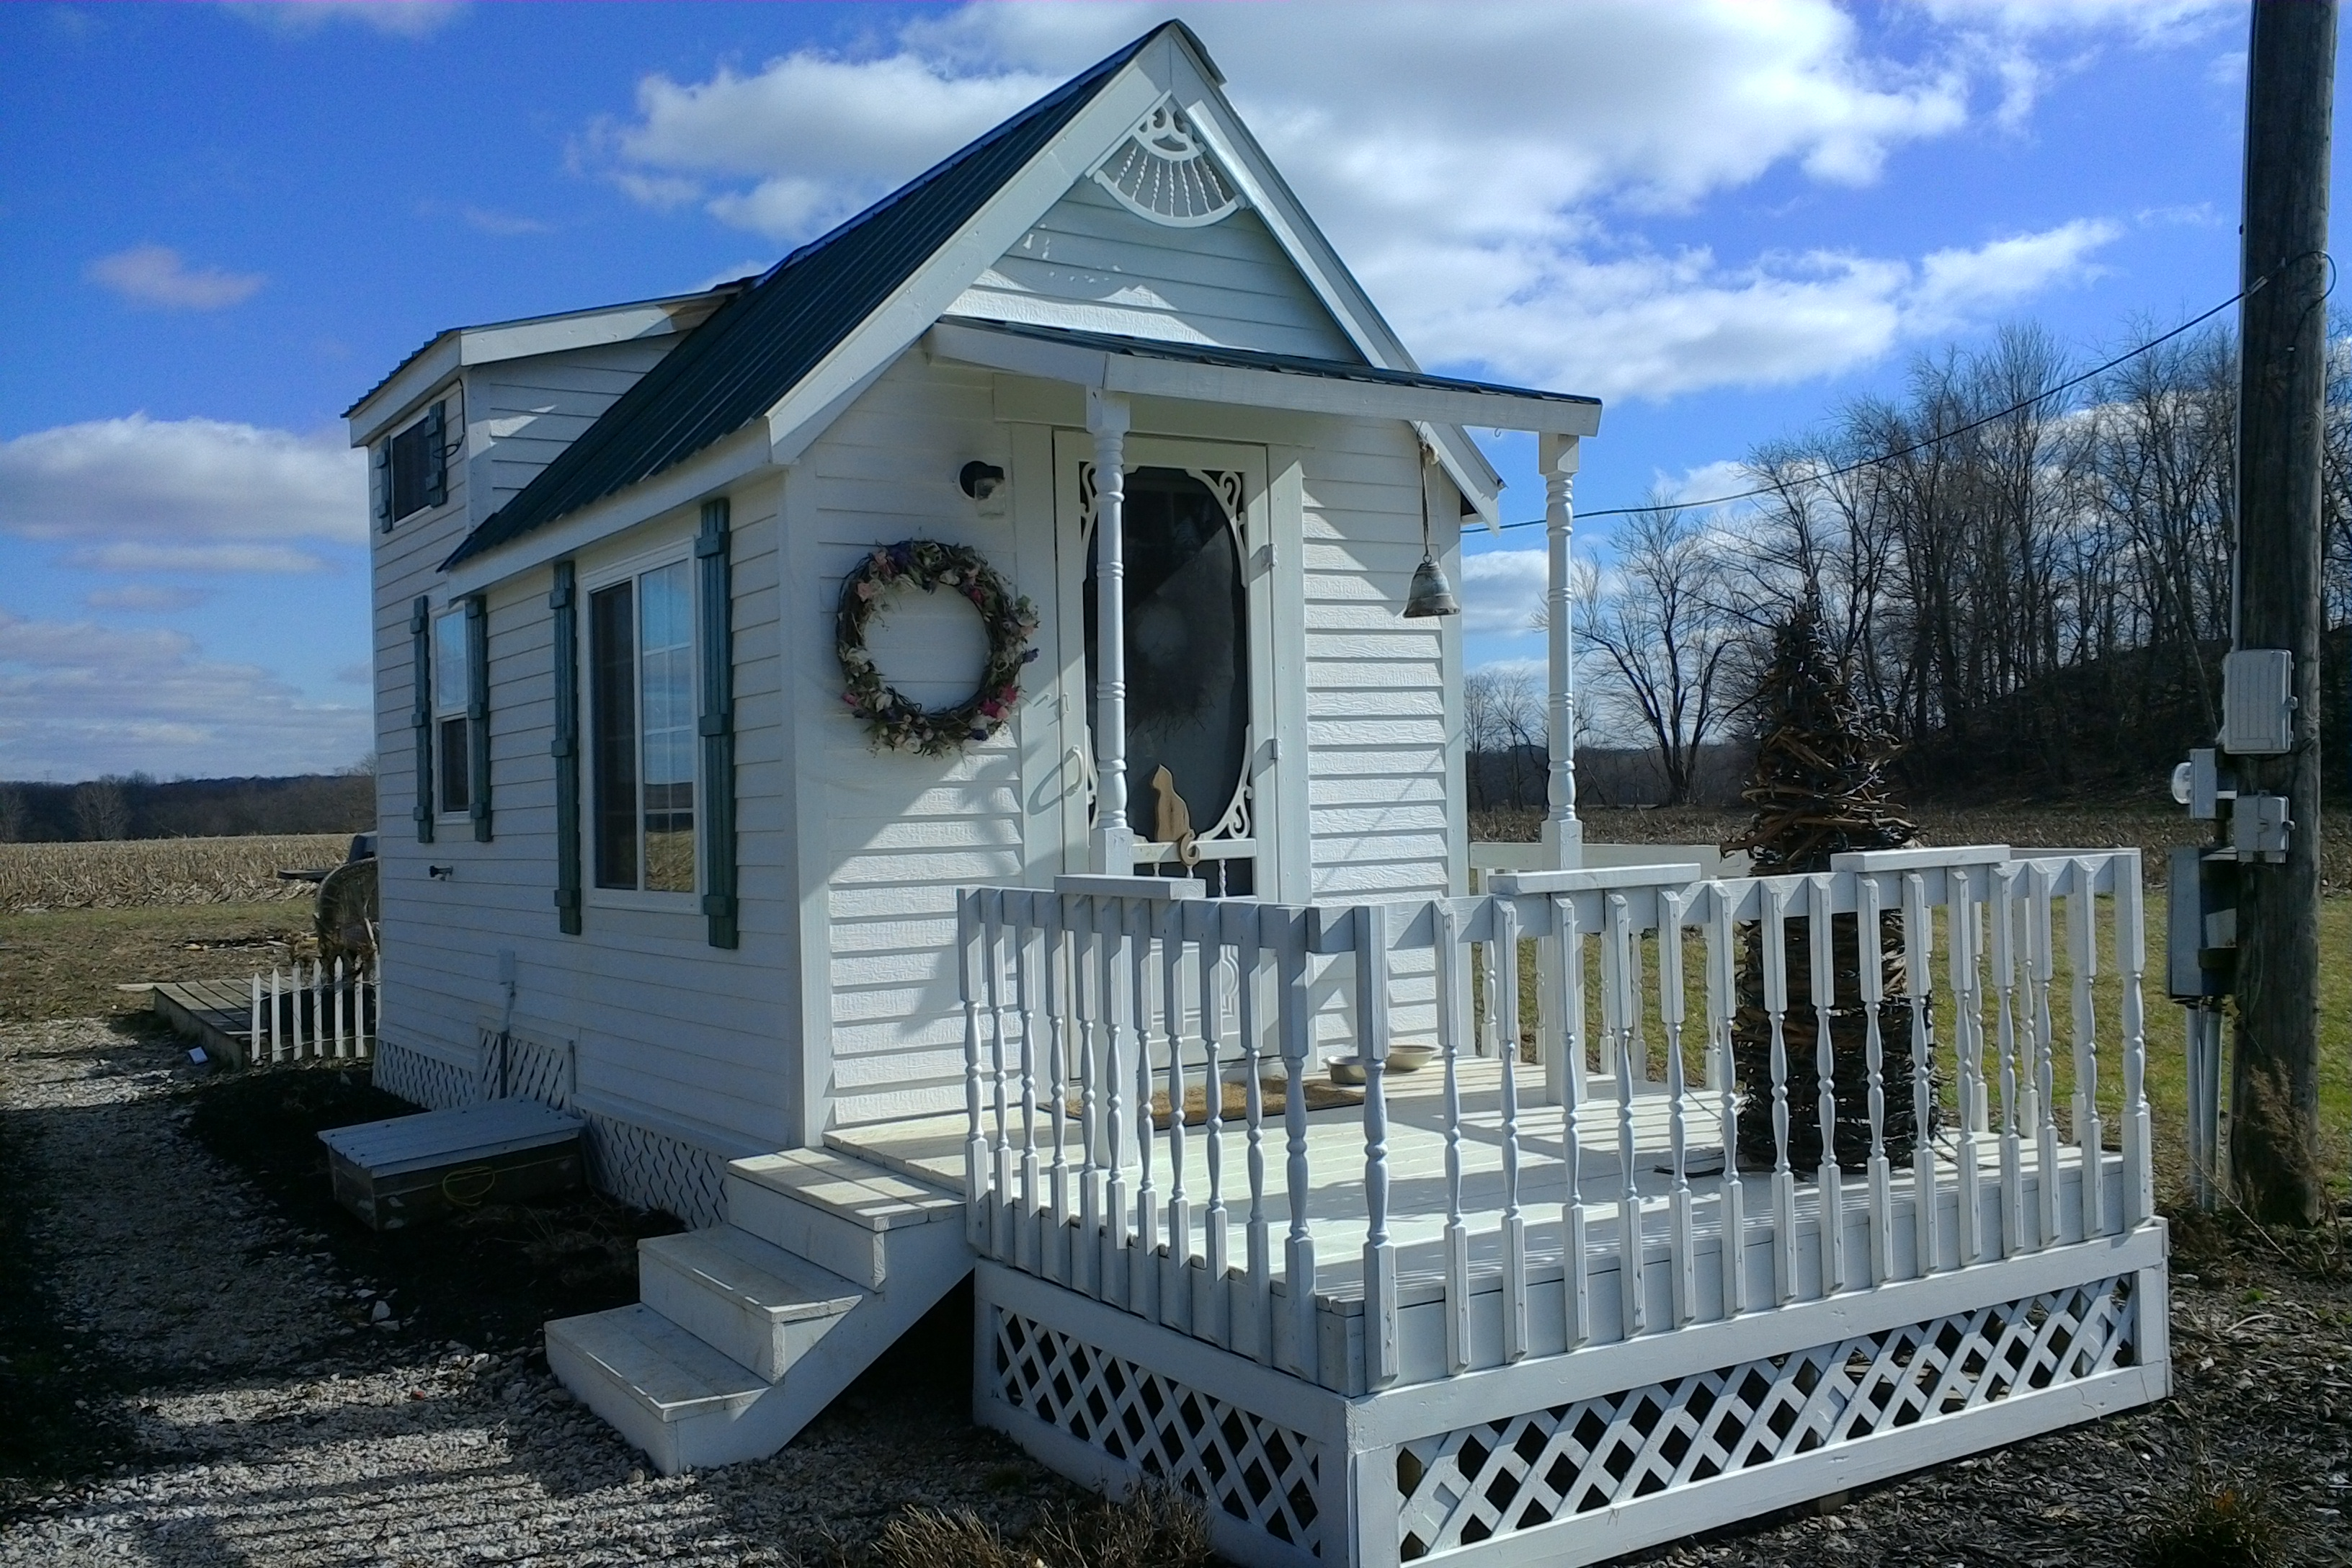 Michelle's Pawsitively Tiny House: More Pictures